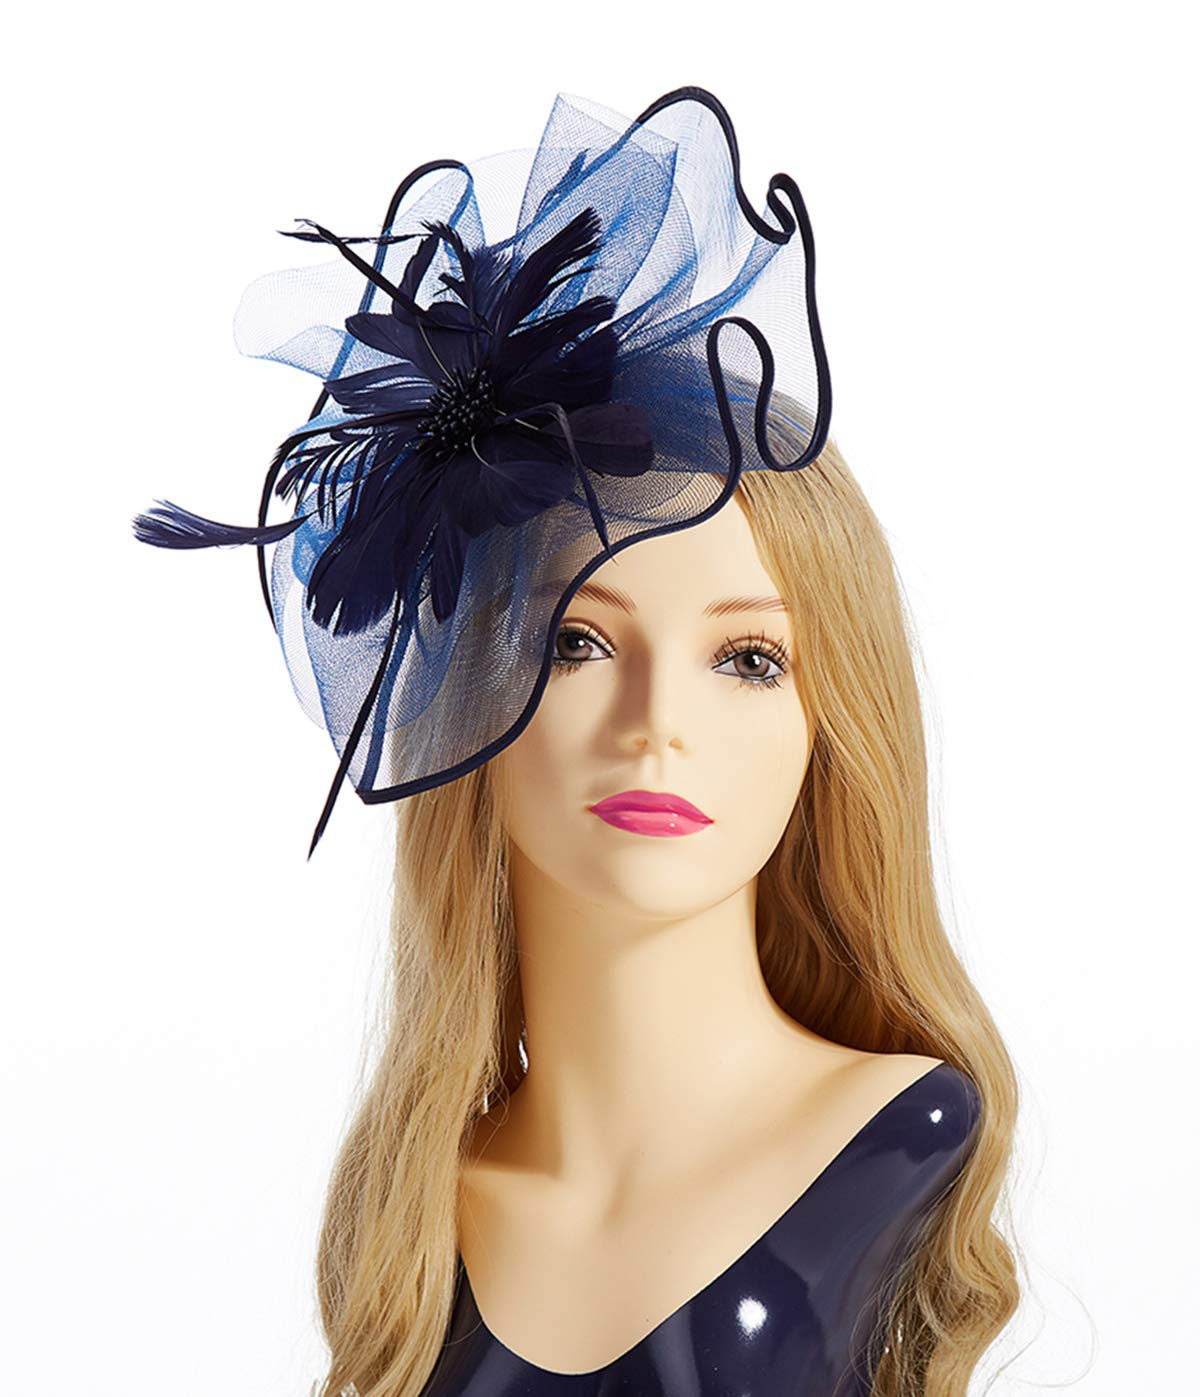 Fascinator Hat,Aiskki Fascinator Headband Feather Mesh Net Hat With Hairband and Gift Gloves,Tea Party Headwear,Flower Derby Hat with Clip,Kentucky Derby Hats for Women(Dark Blue)